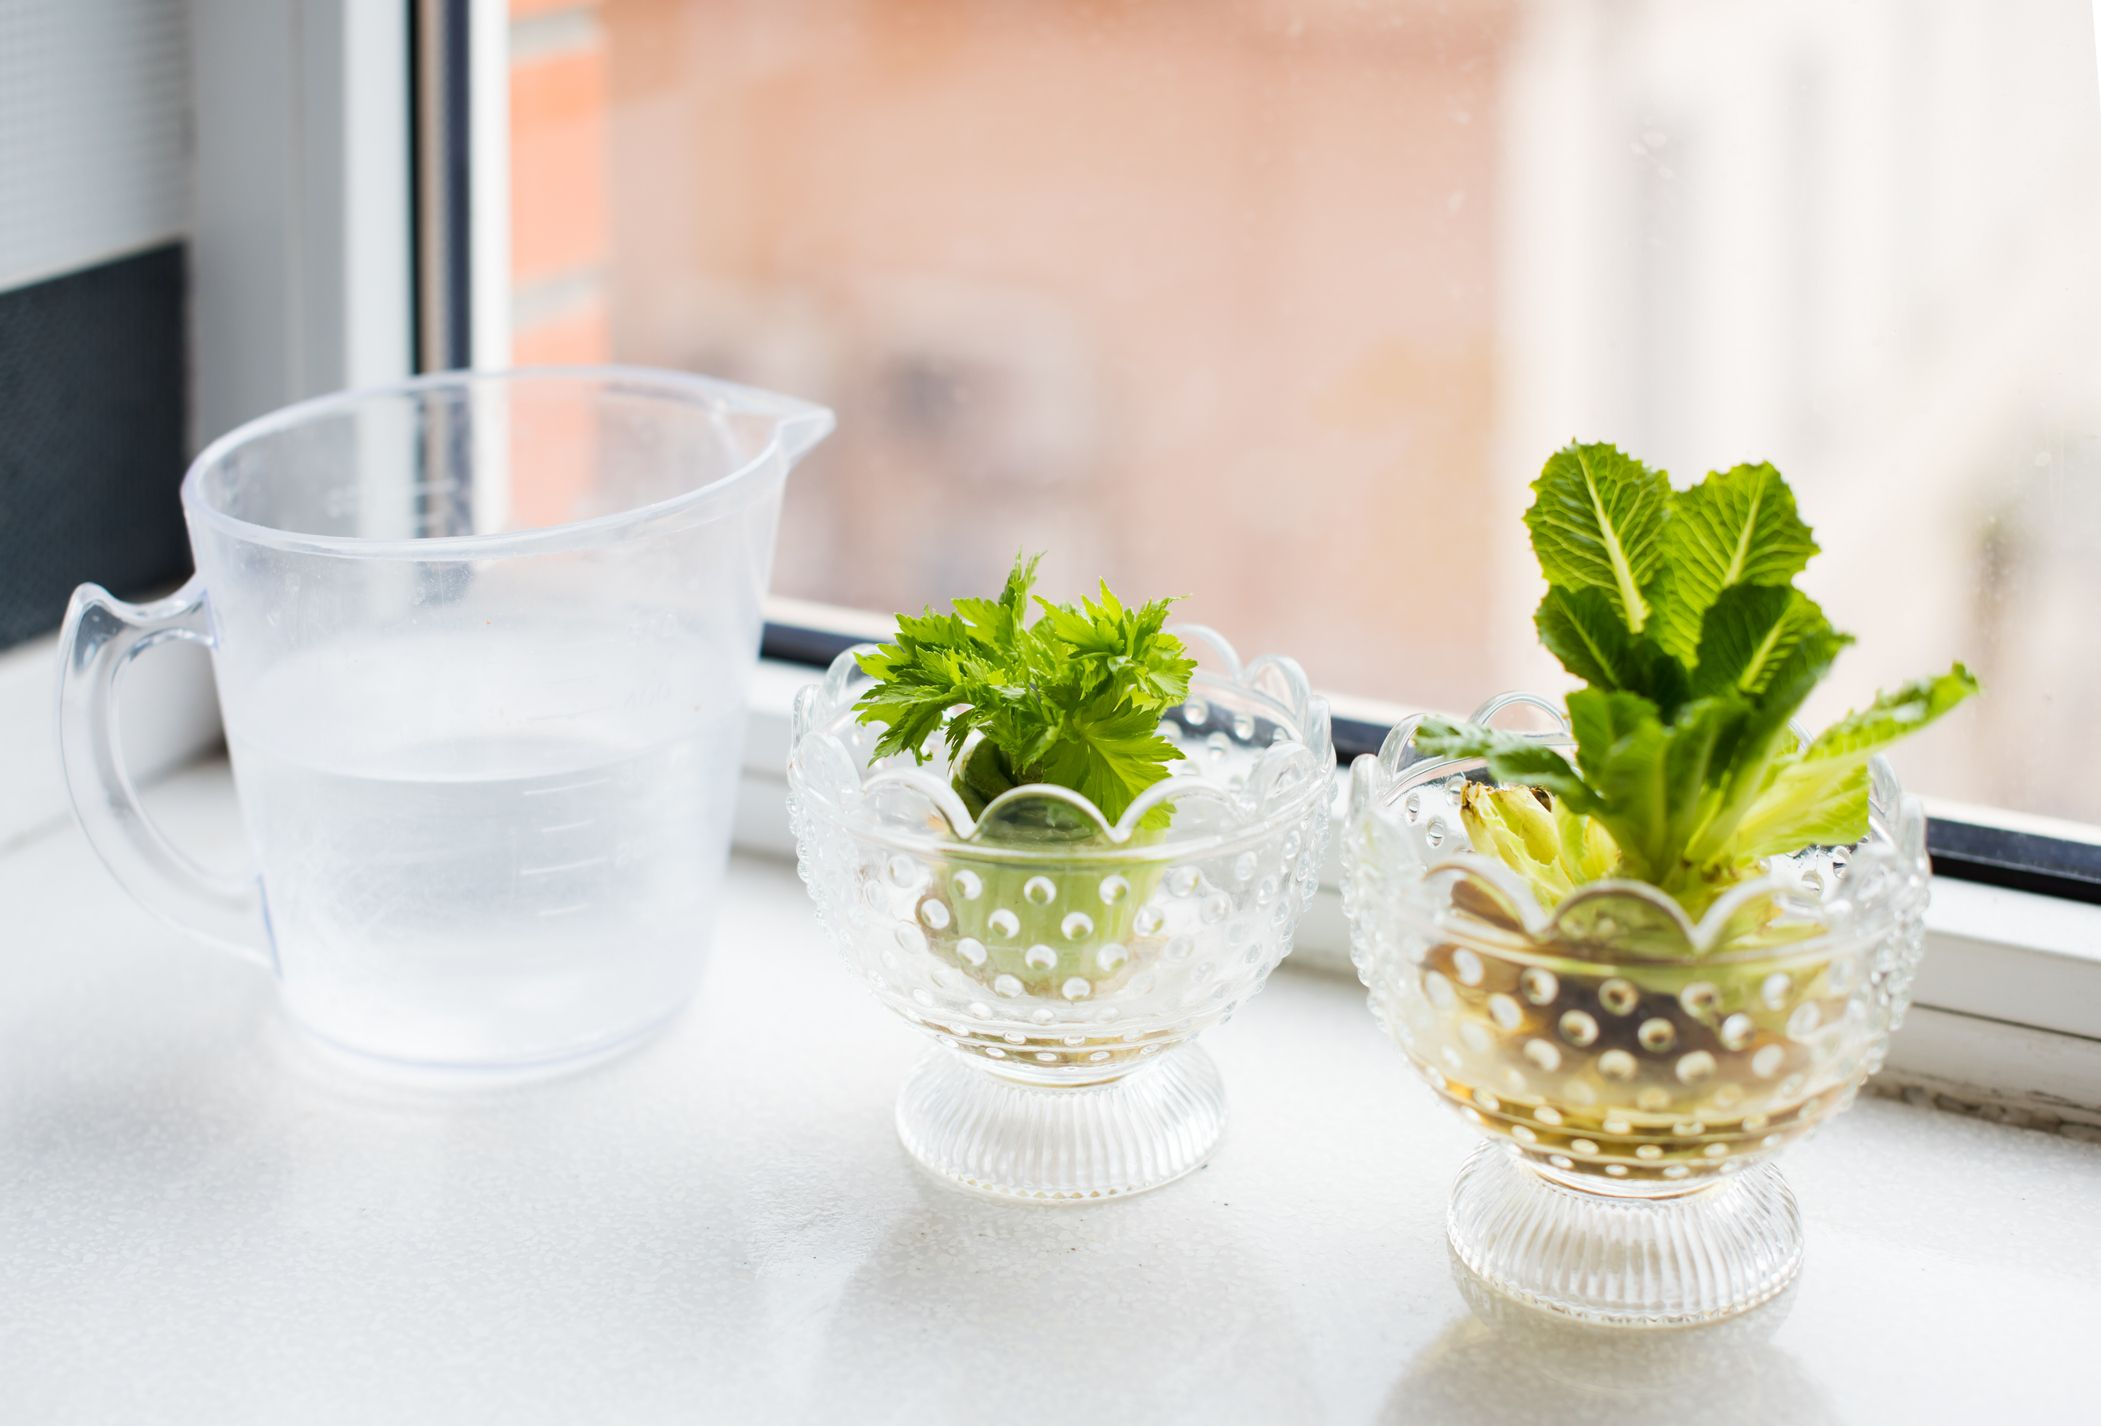 7 vegetables you can easily regrow indoors using kitchen scraps